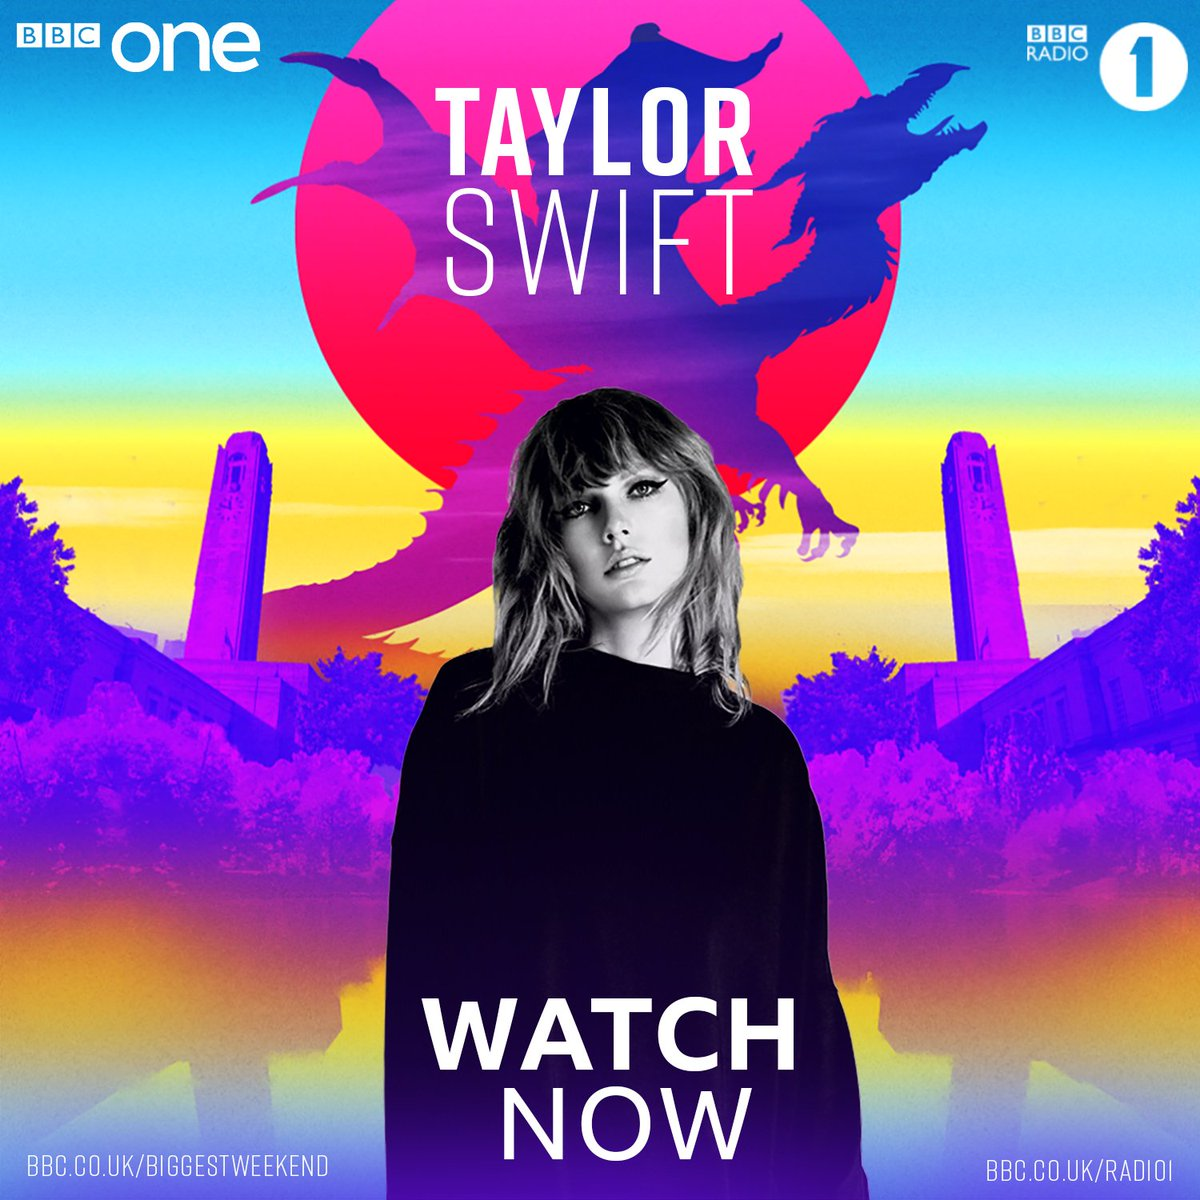 ARE YOU READY FOR IT!? It's @taylorswift13 on @bbcone right...NOW. #BiggestWeekend